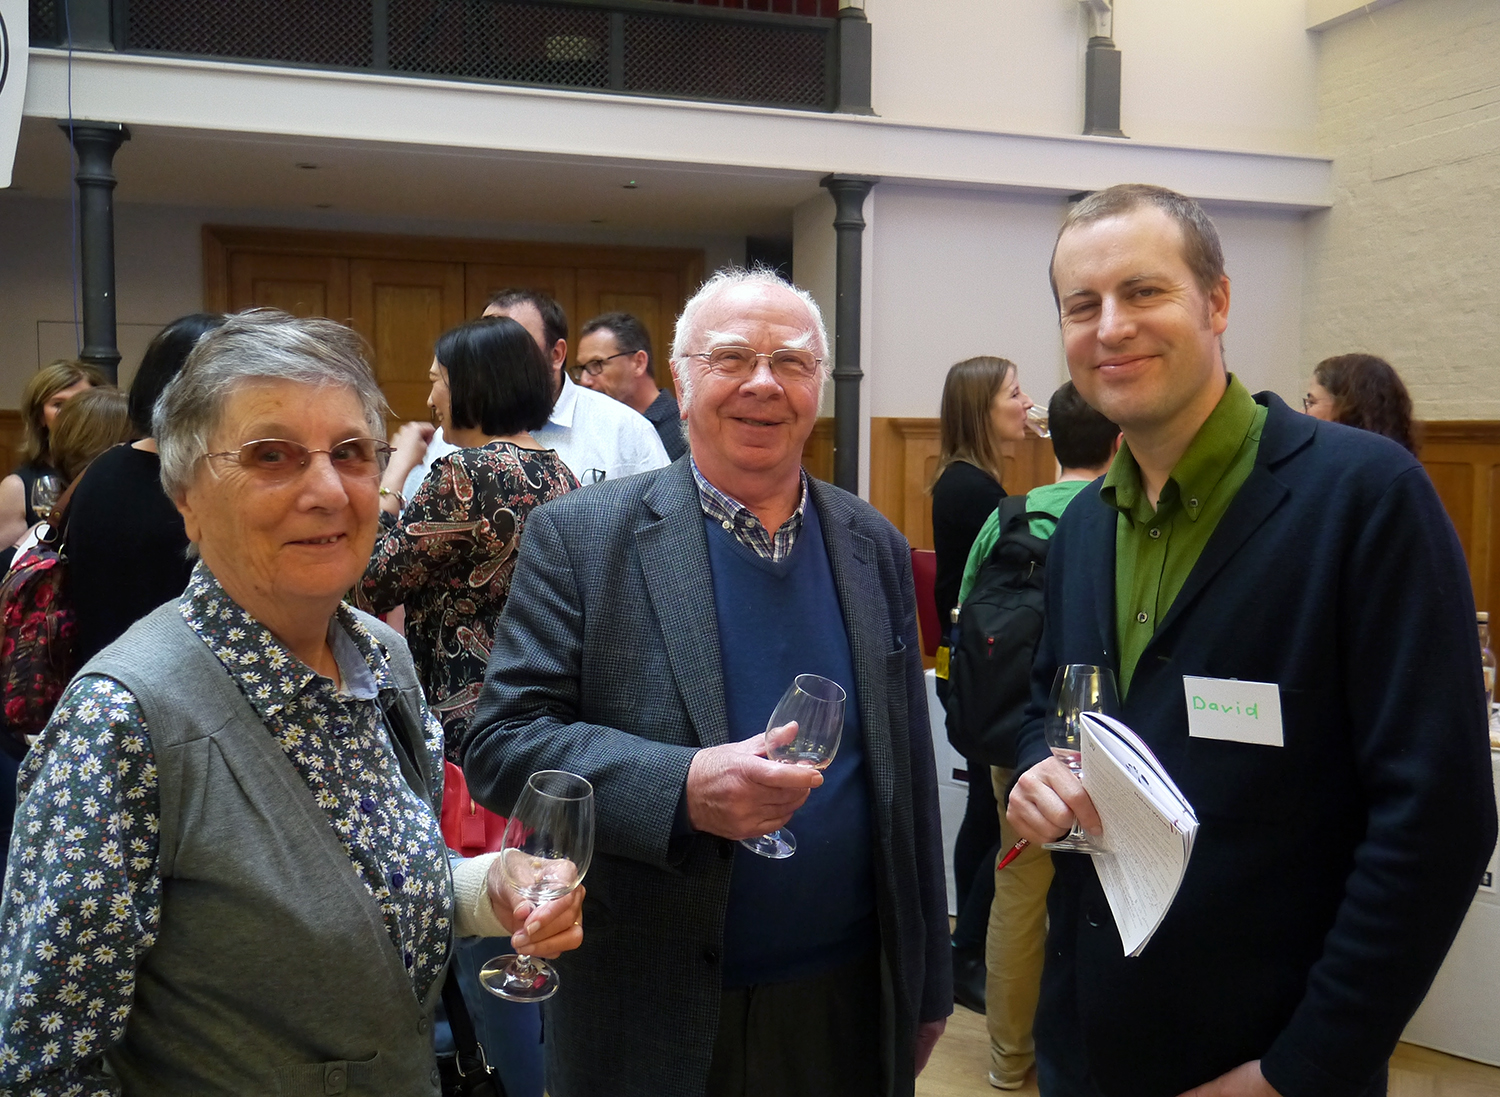 The Wine Gang's David Williams with two of our most faithful guests